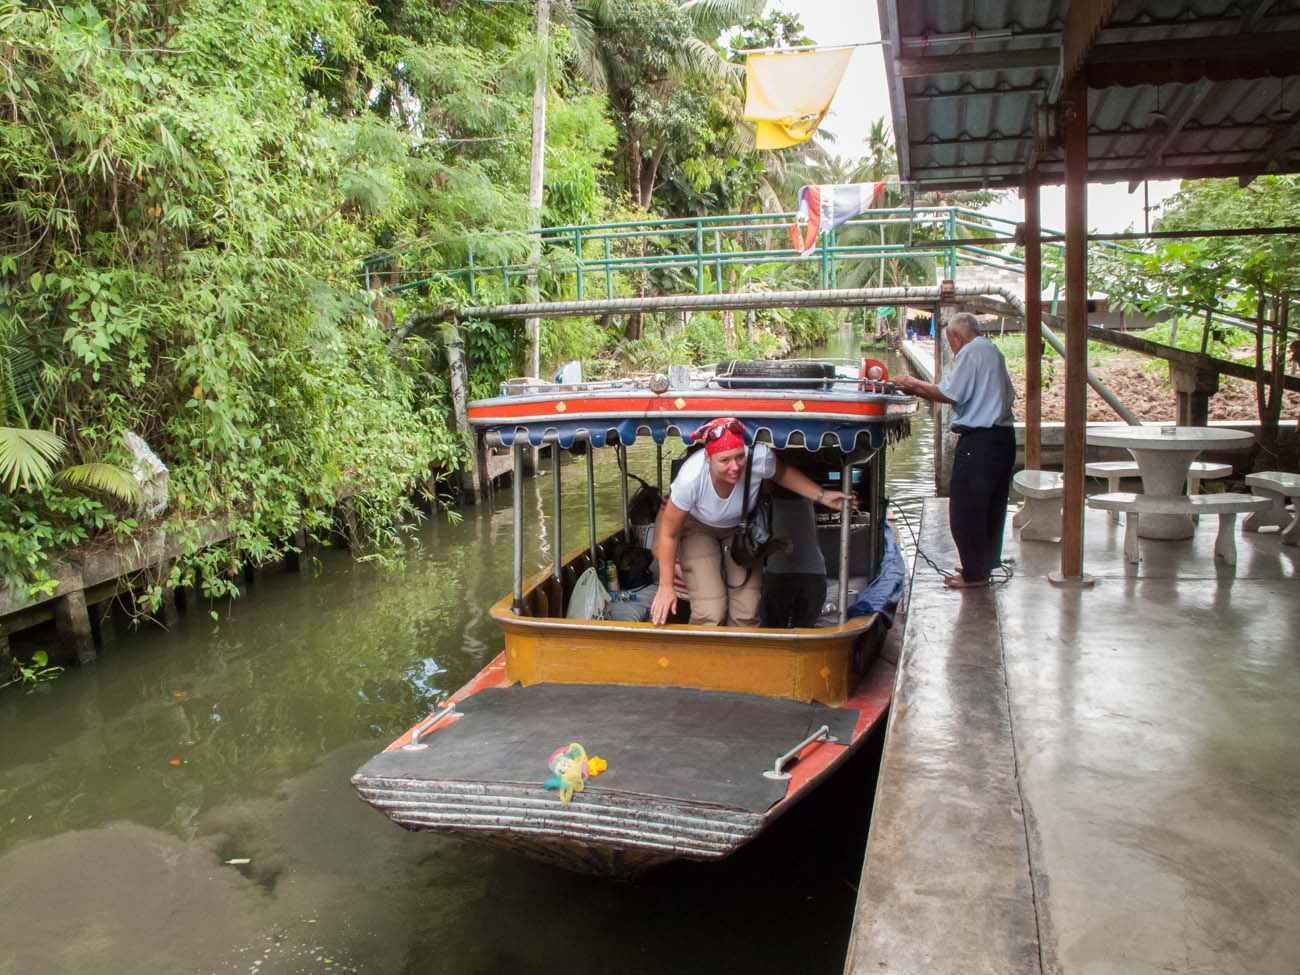 Our tour on the klong